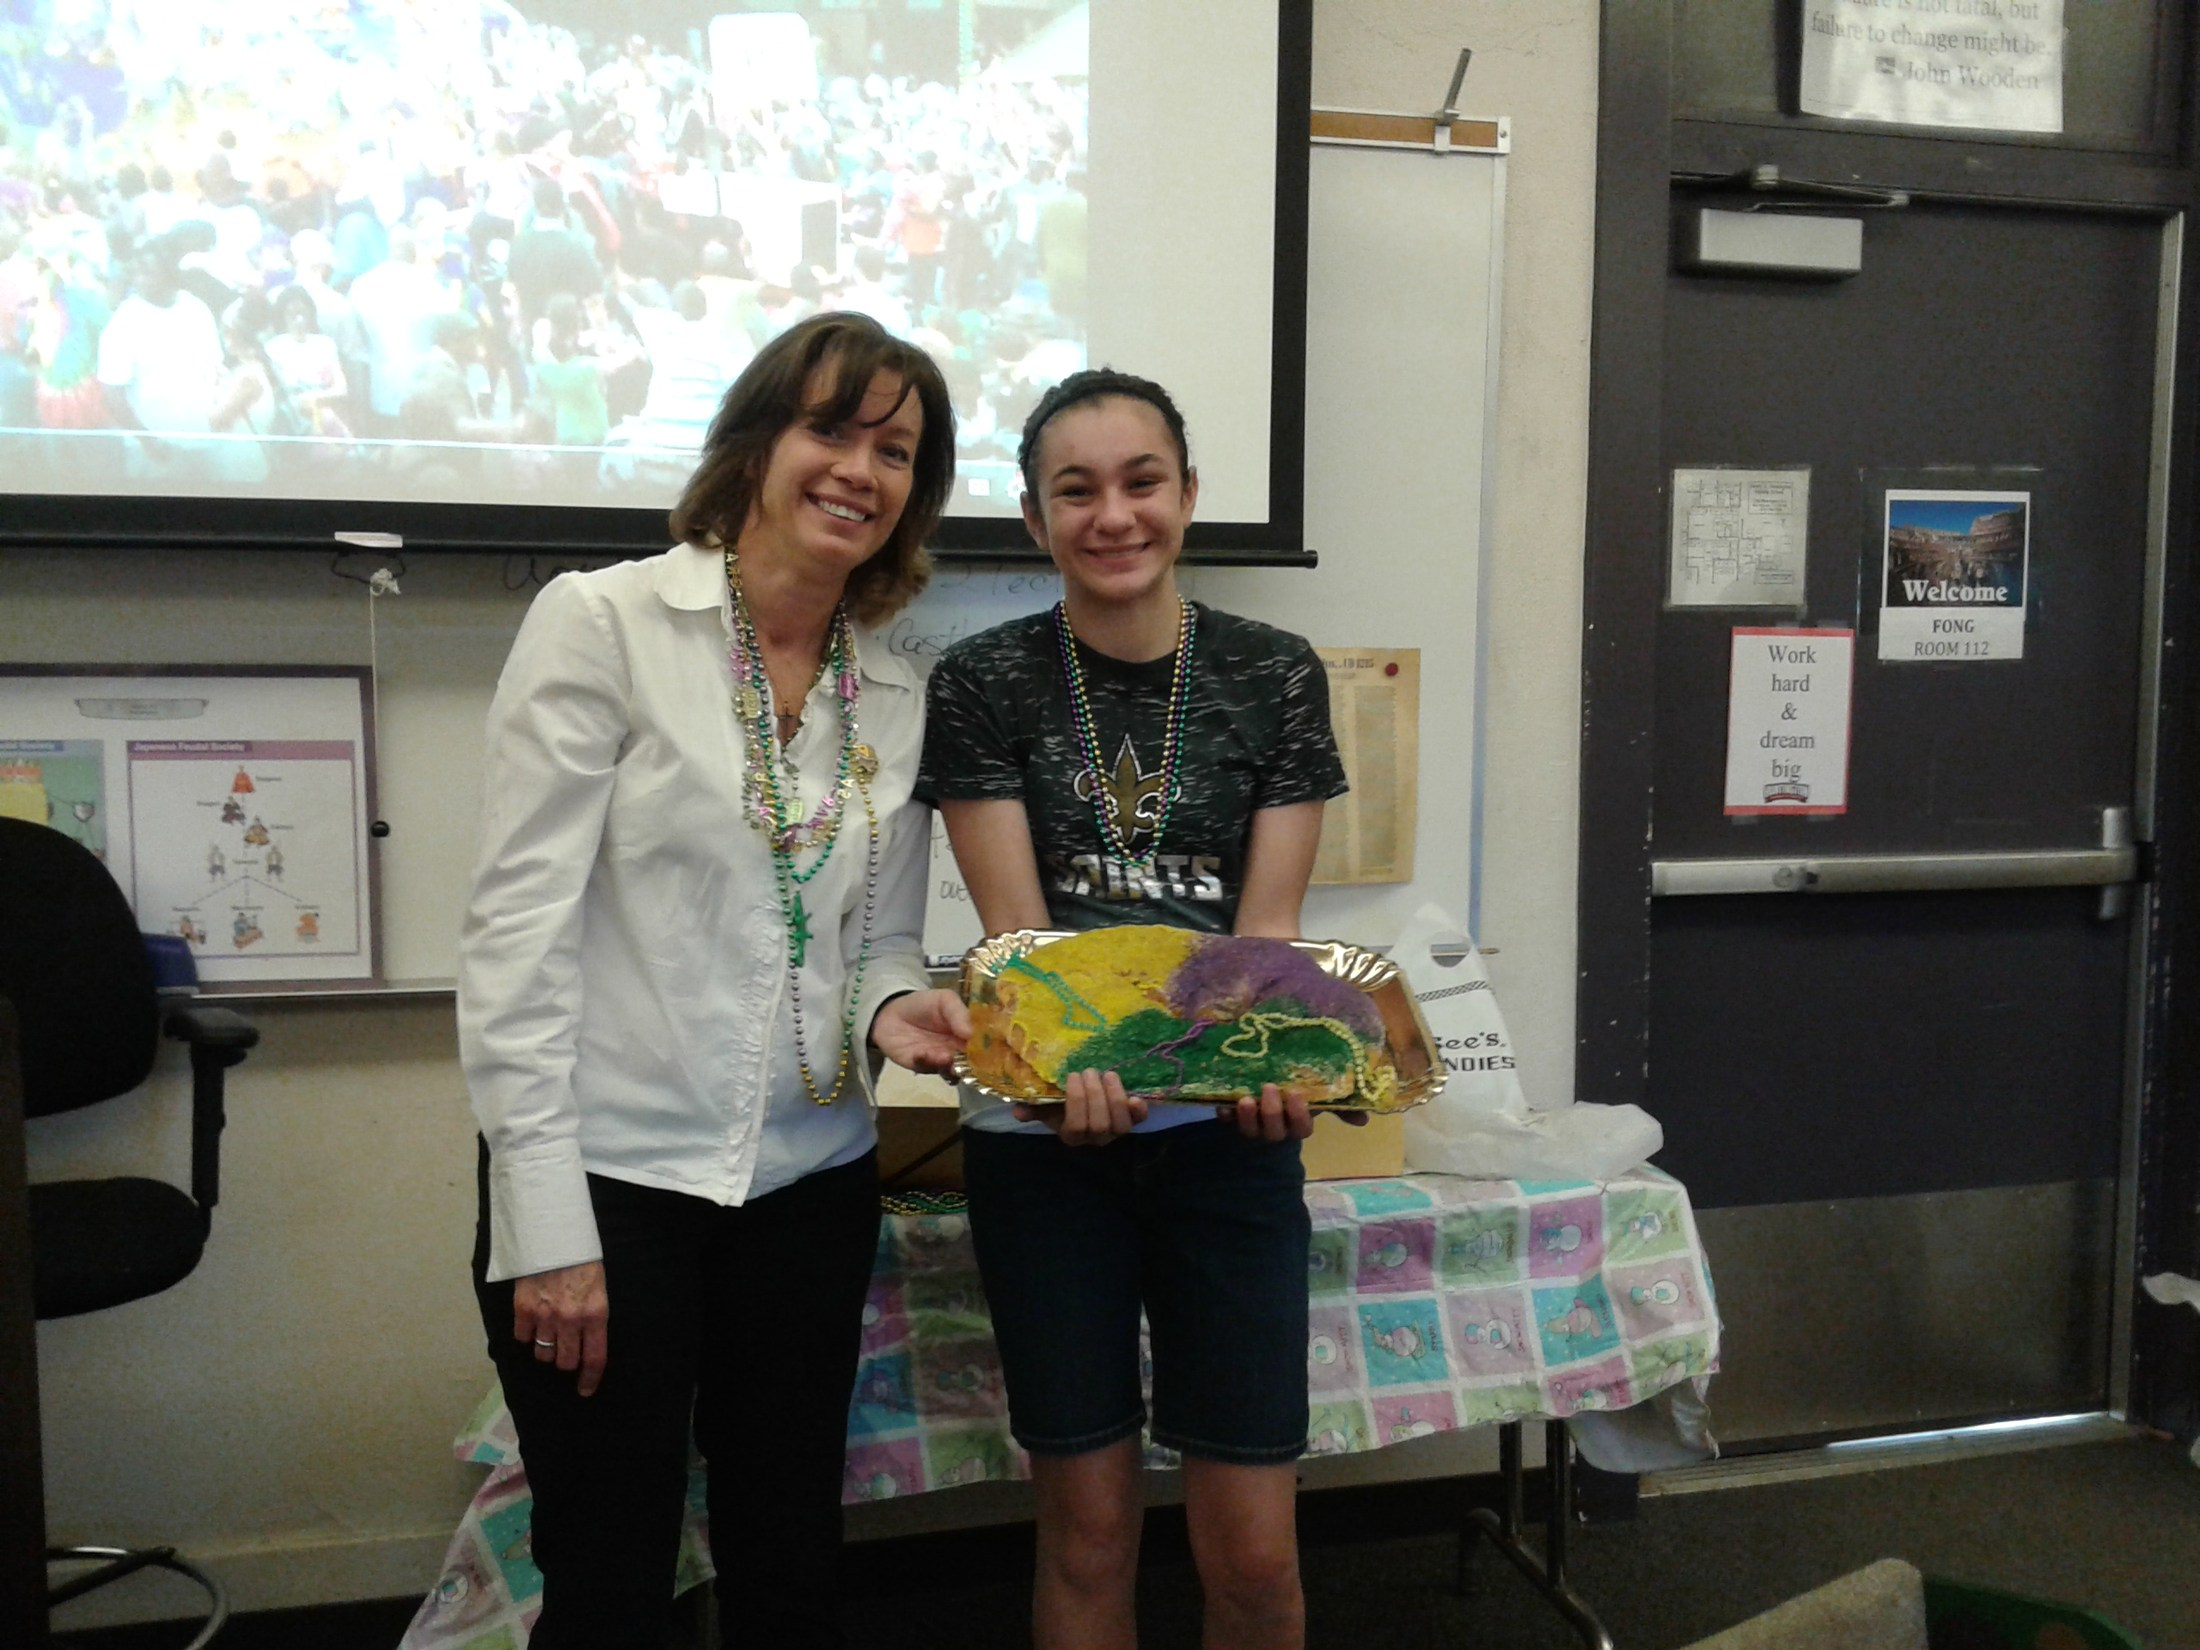 Thank you Mrs. Lytle for the King cake